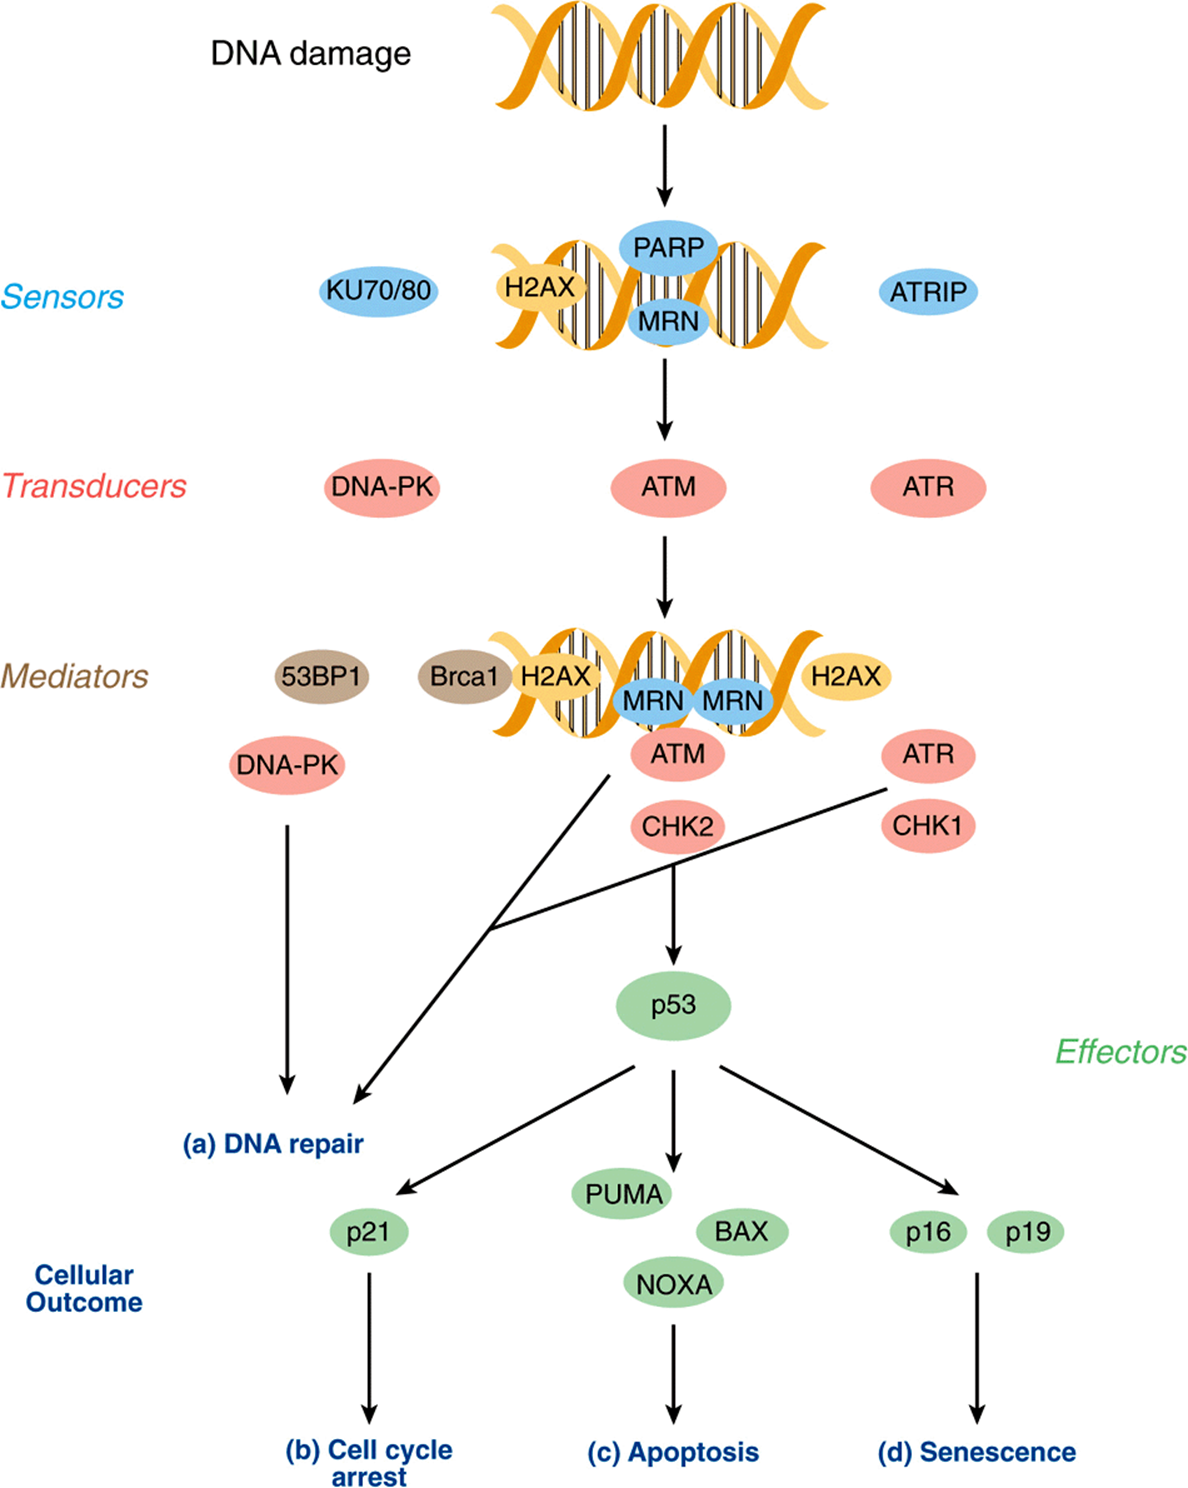 a study of the replication and repair mechanisms of our dna Our dna blueprint is under continuous including dna repair dr wang's research focuses on understanding the mechanisms of cellular responses to dna.